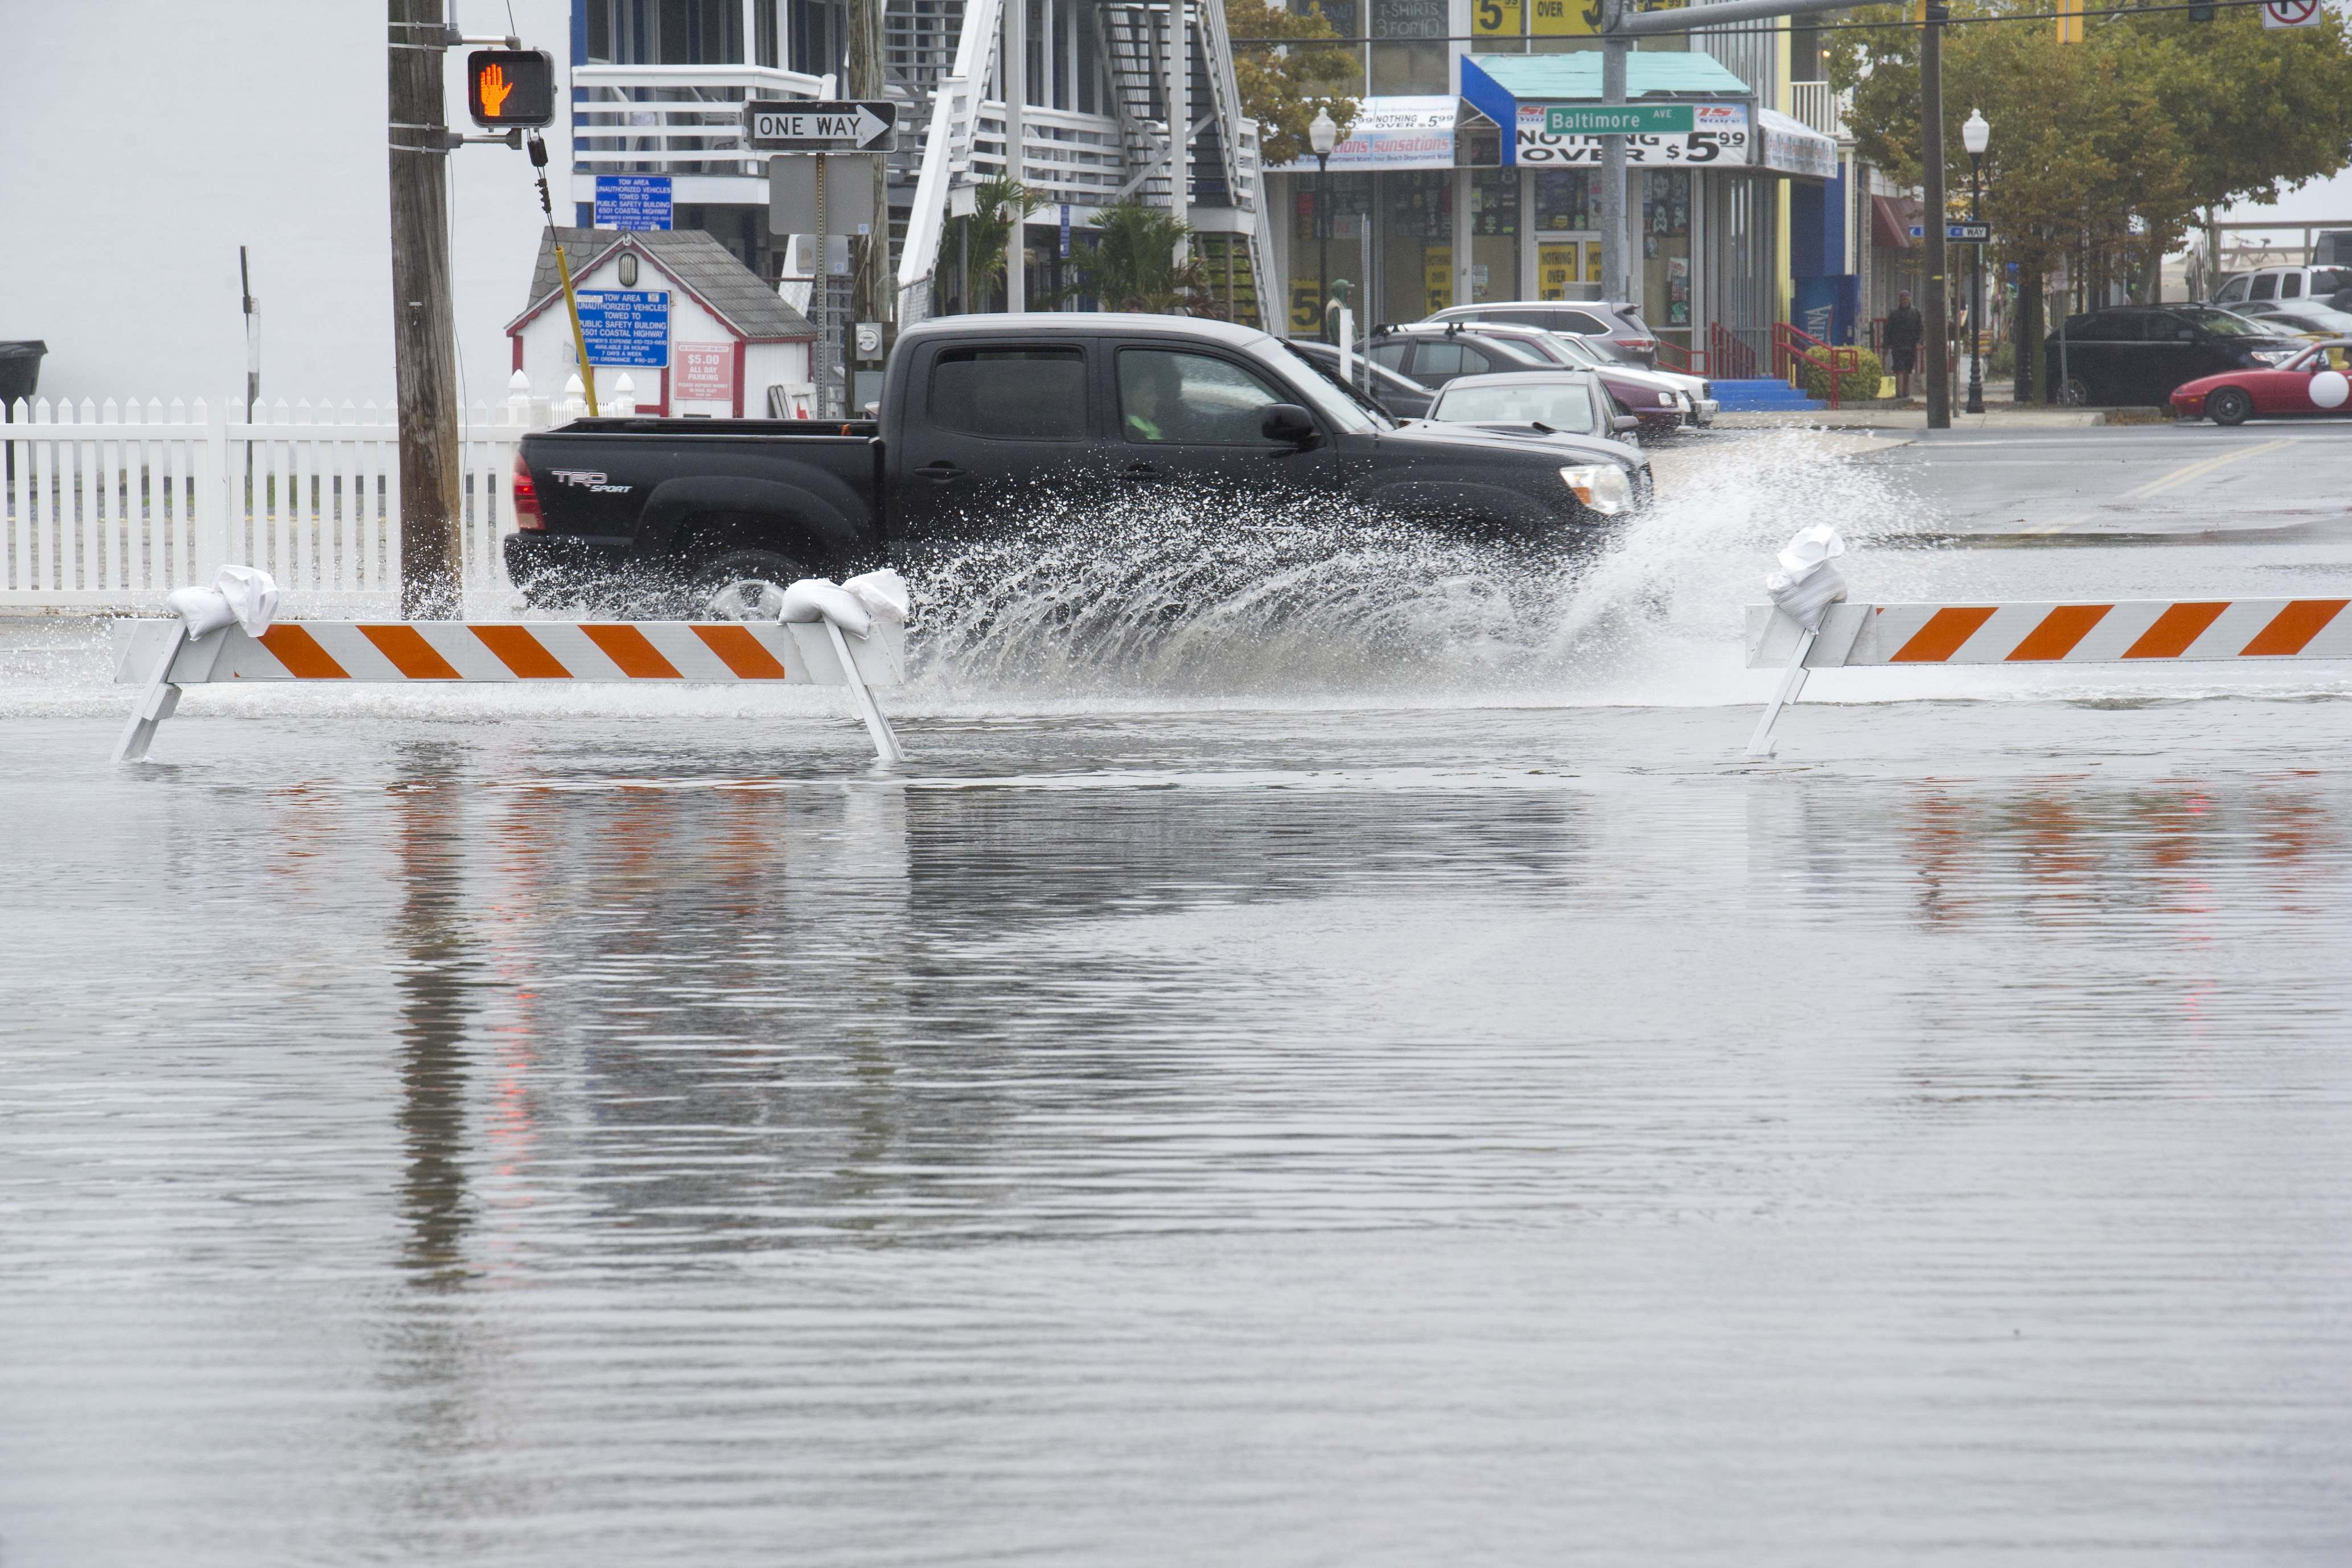 Traffic drives on flooded roads, at high-tide, in downtown Ocean City, Md., Saturday, Oct. 3, 2015.